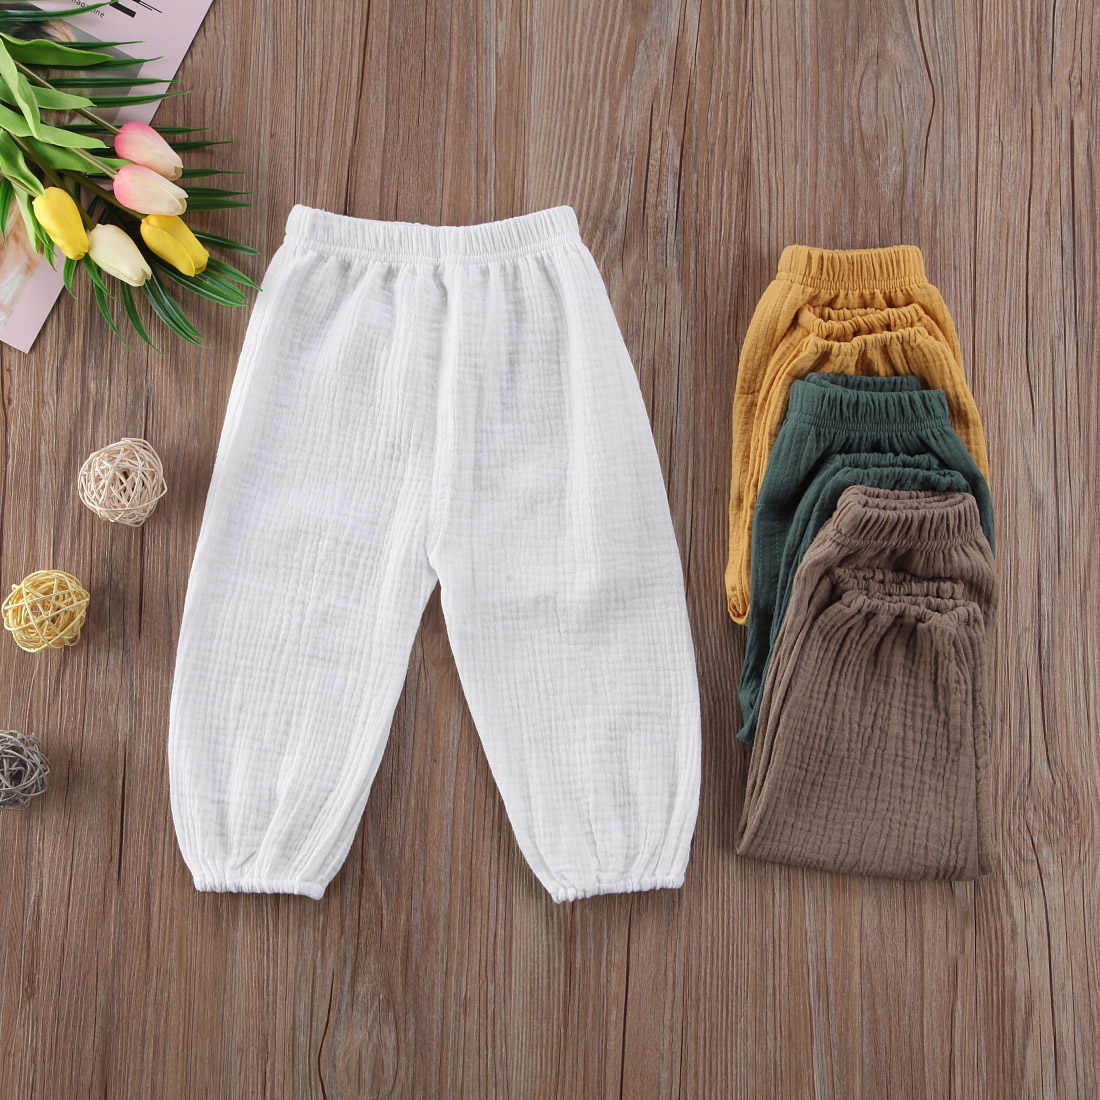 821a85a8d Casual Baby Kids Boys Girls Cotton Long Pant Legging Toddler Solid Trouser  Soft PP Pant Long